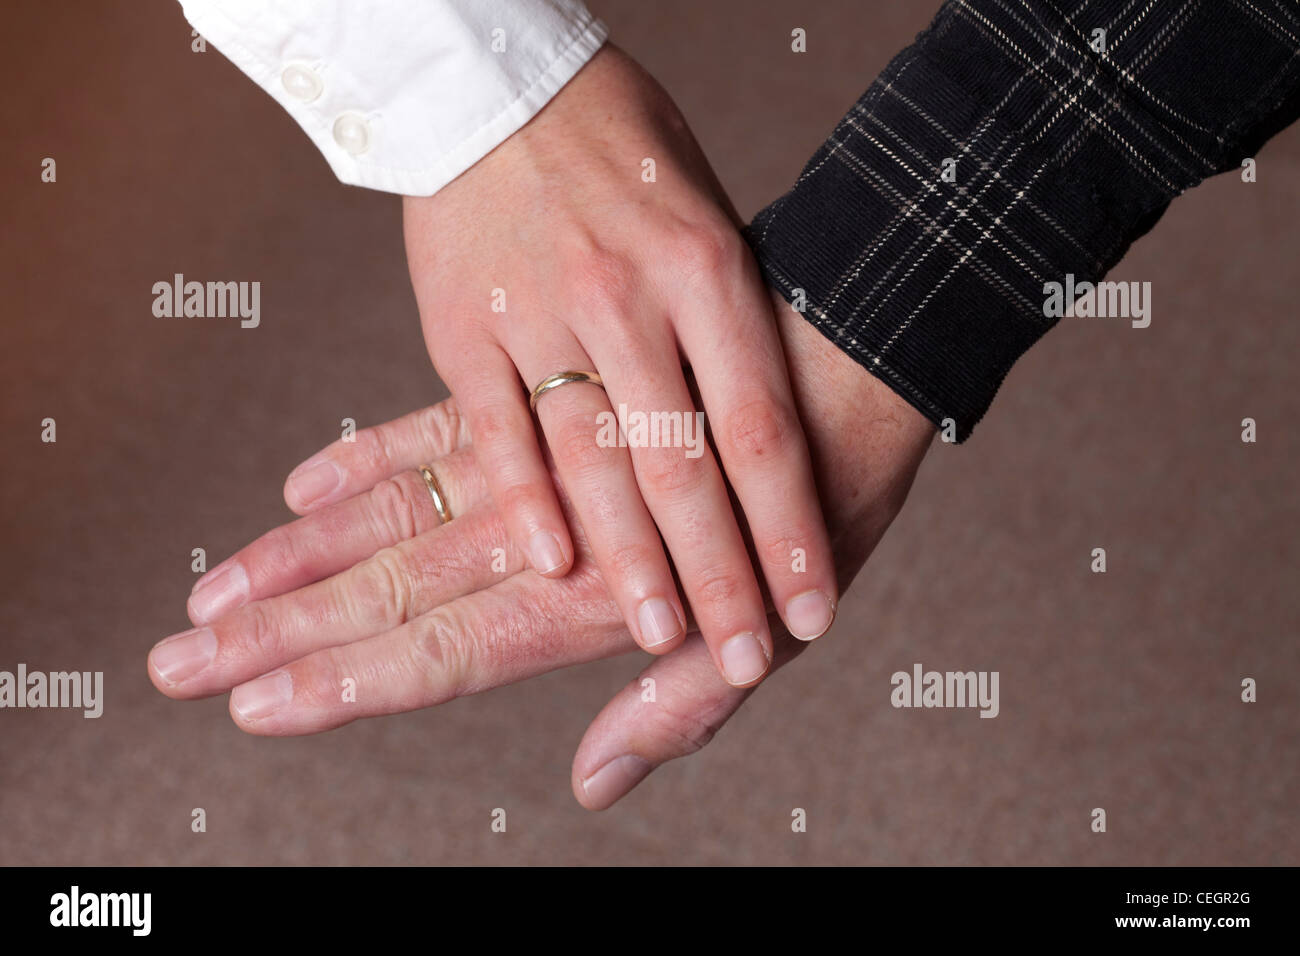 Old and young getting married - Stock Image